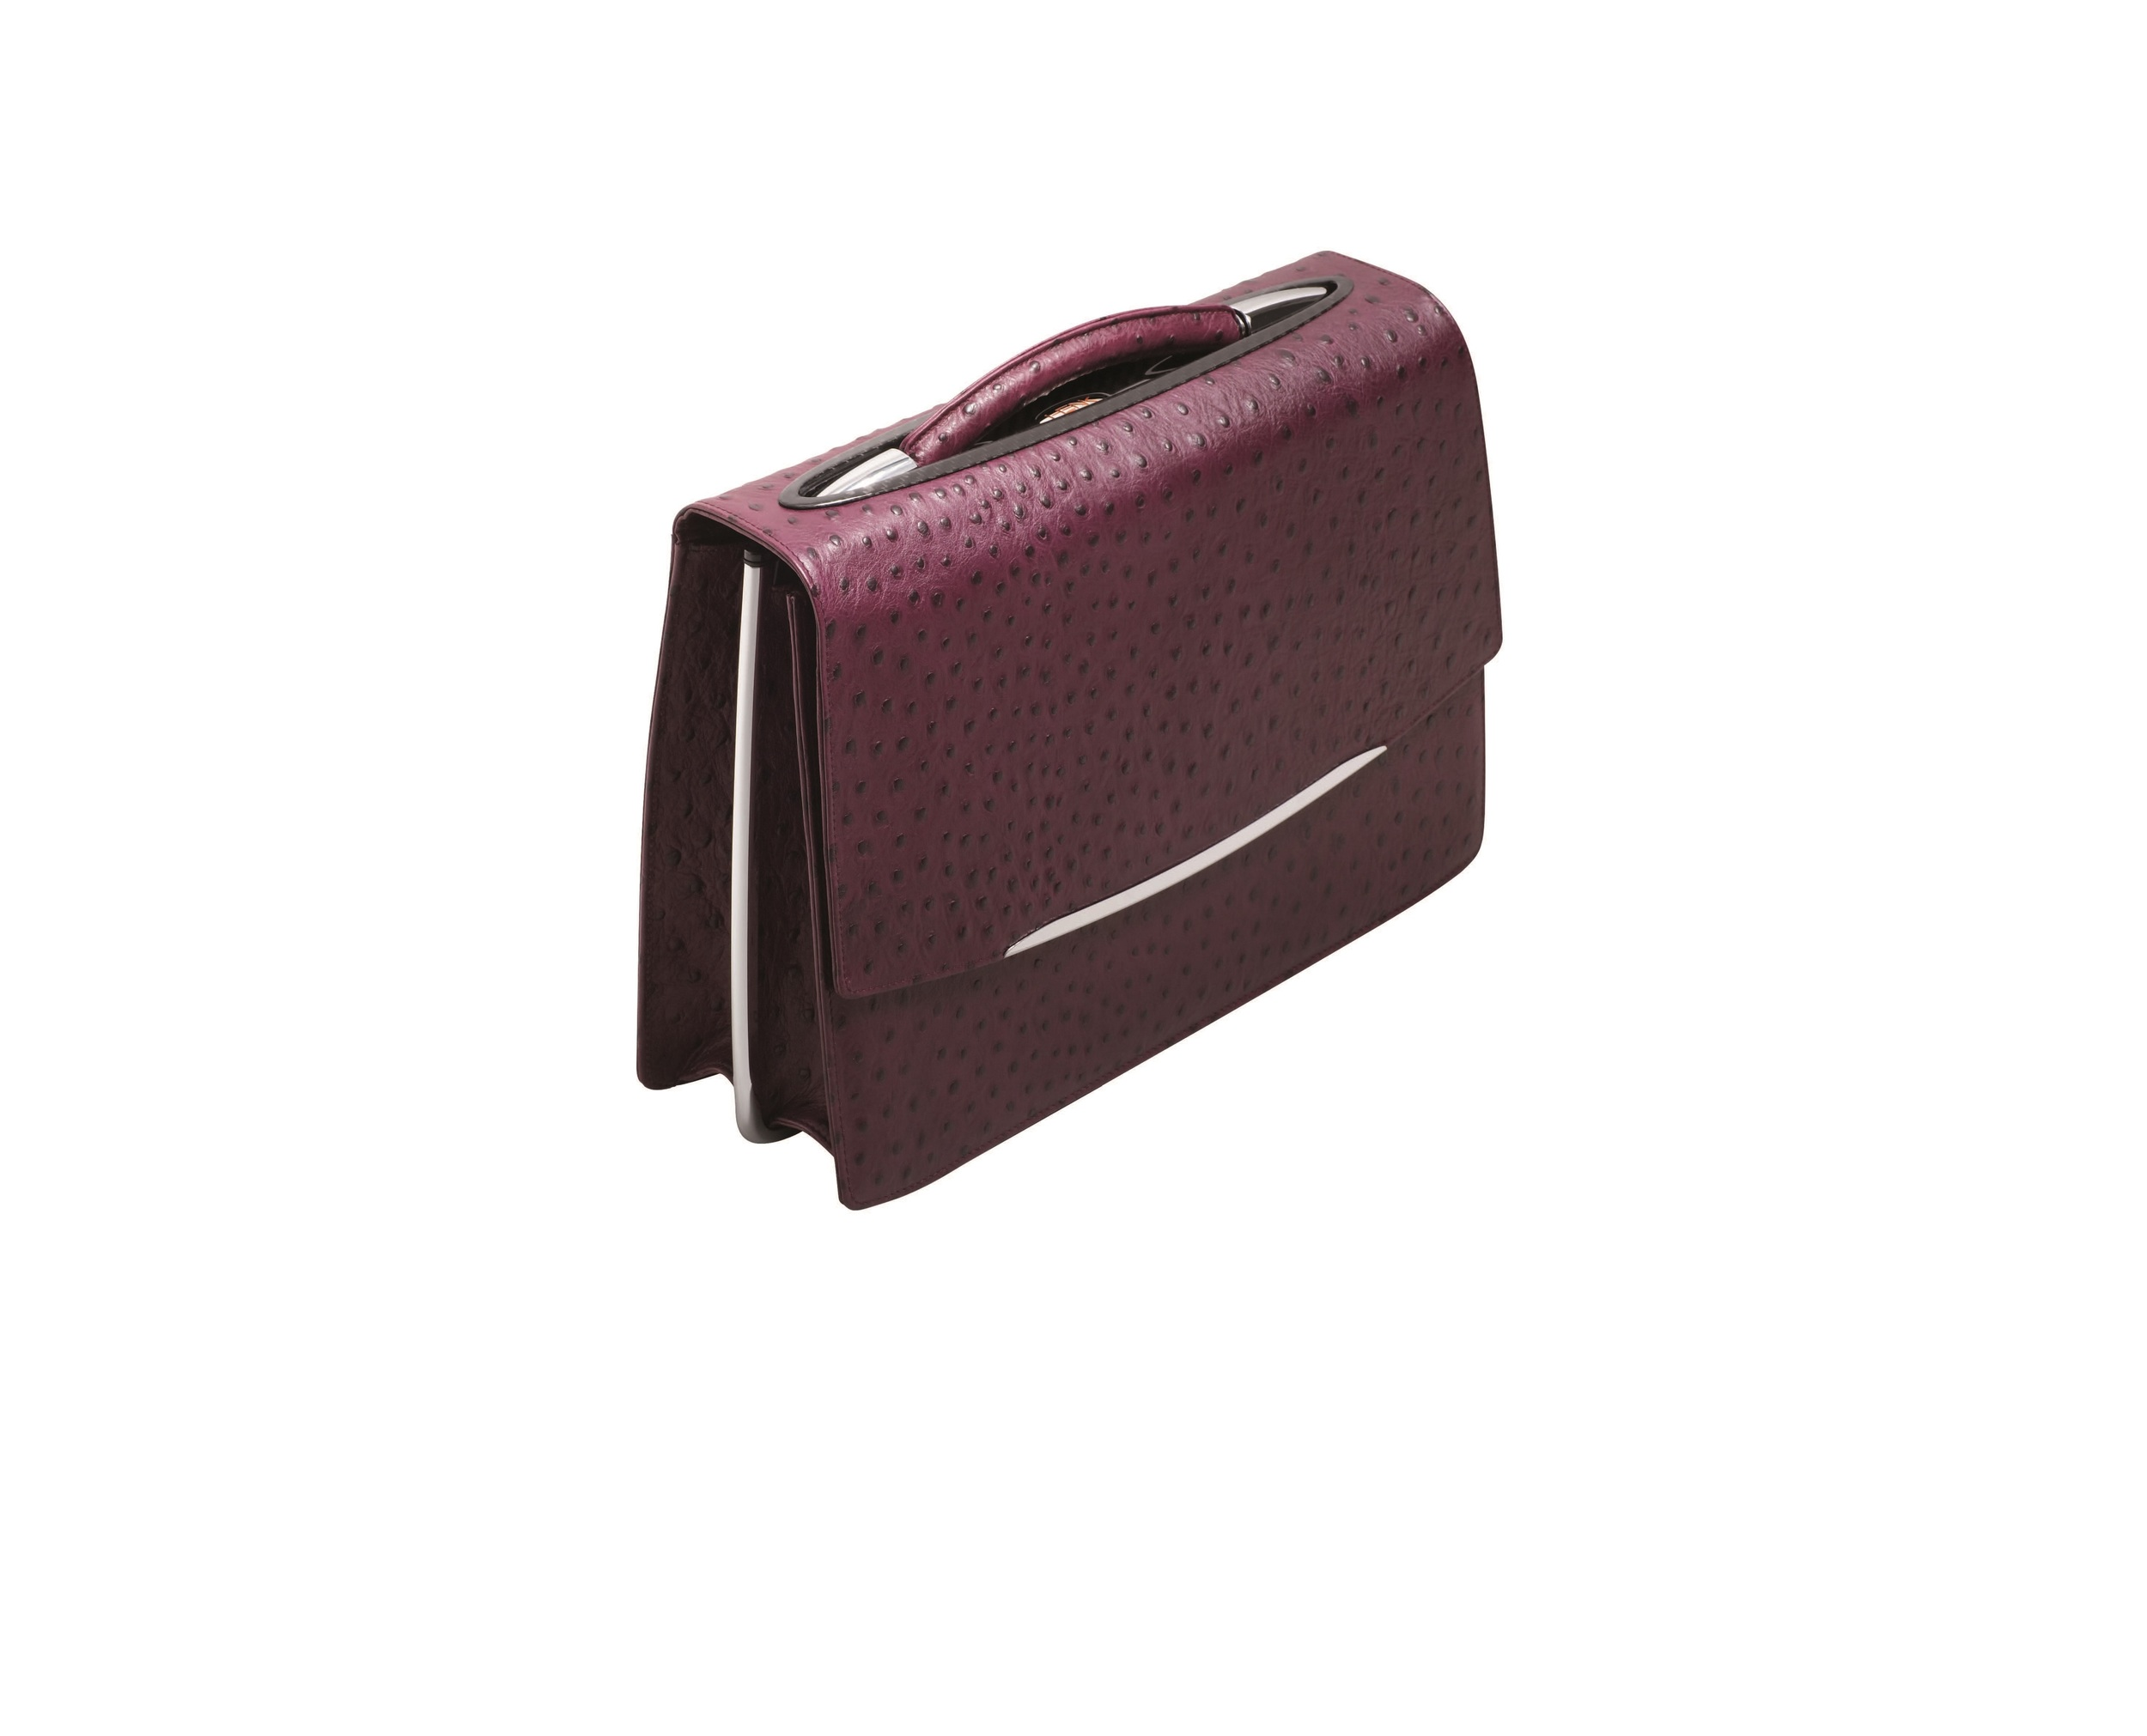 HENK Ladies Briefcase in Violet 'Ostrich'. From $6,000 made to order